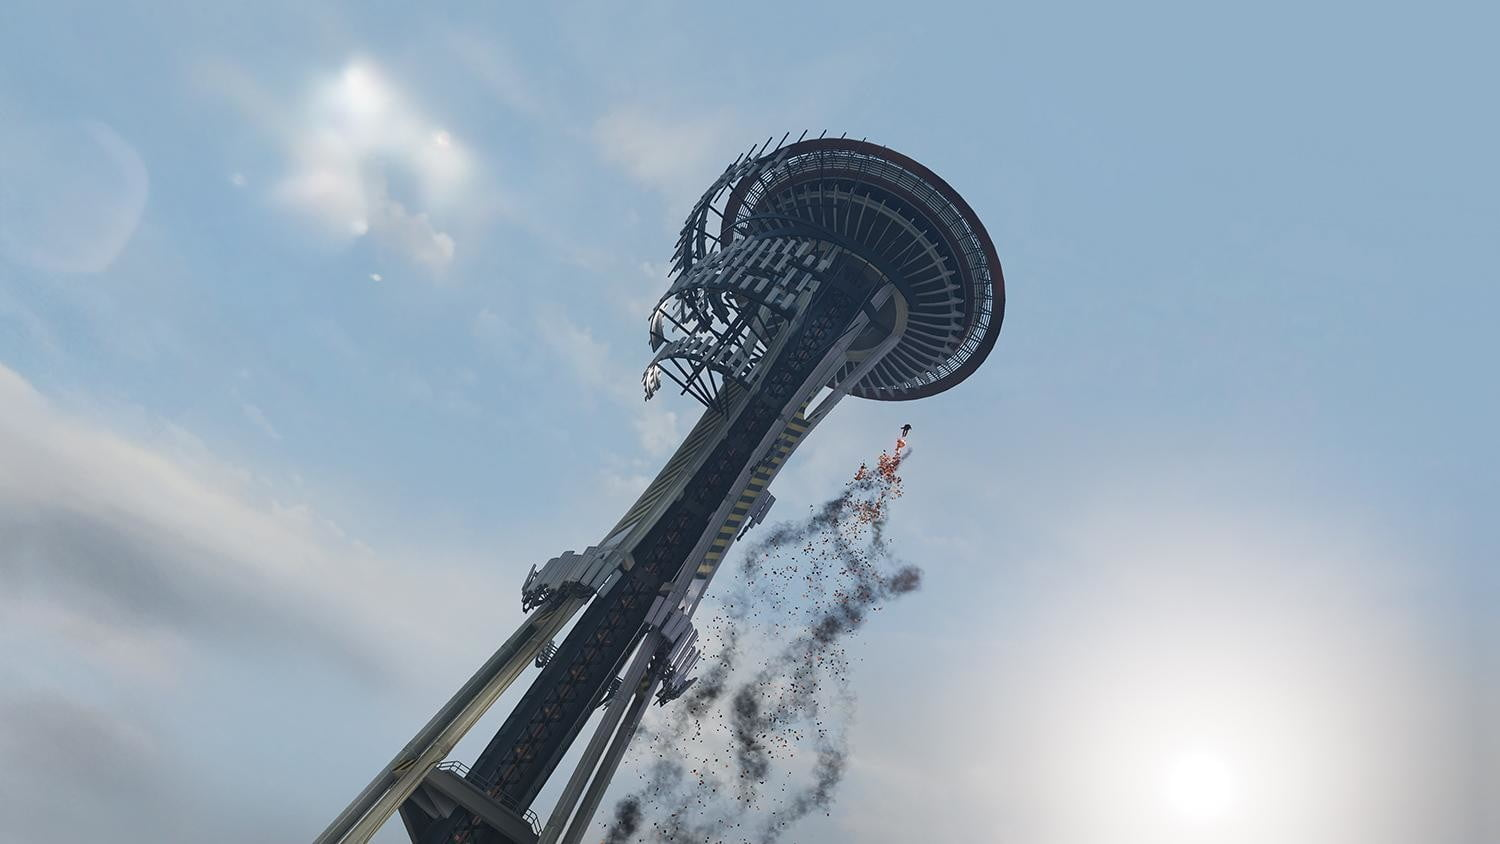 inFAMOUS_Second_Son_Smoke-Ascent_1382631518